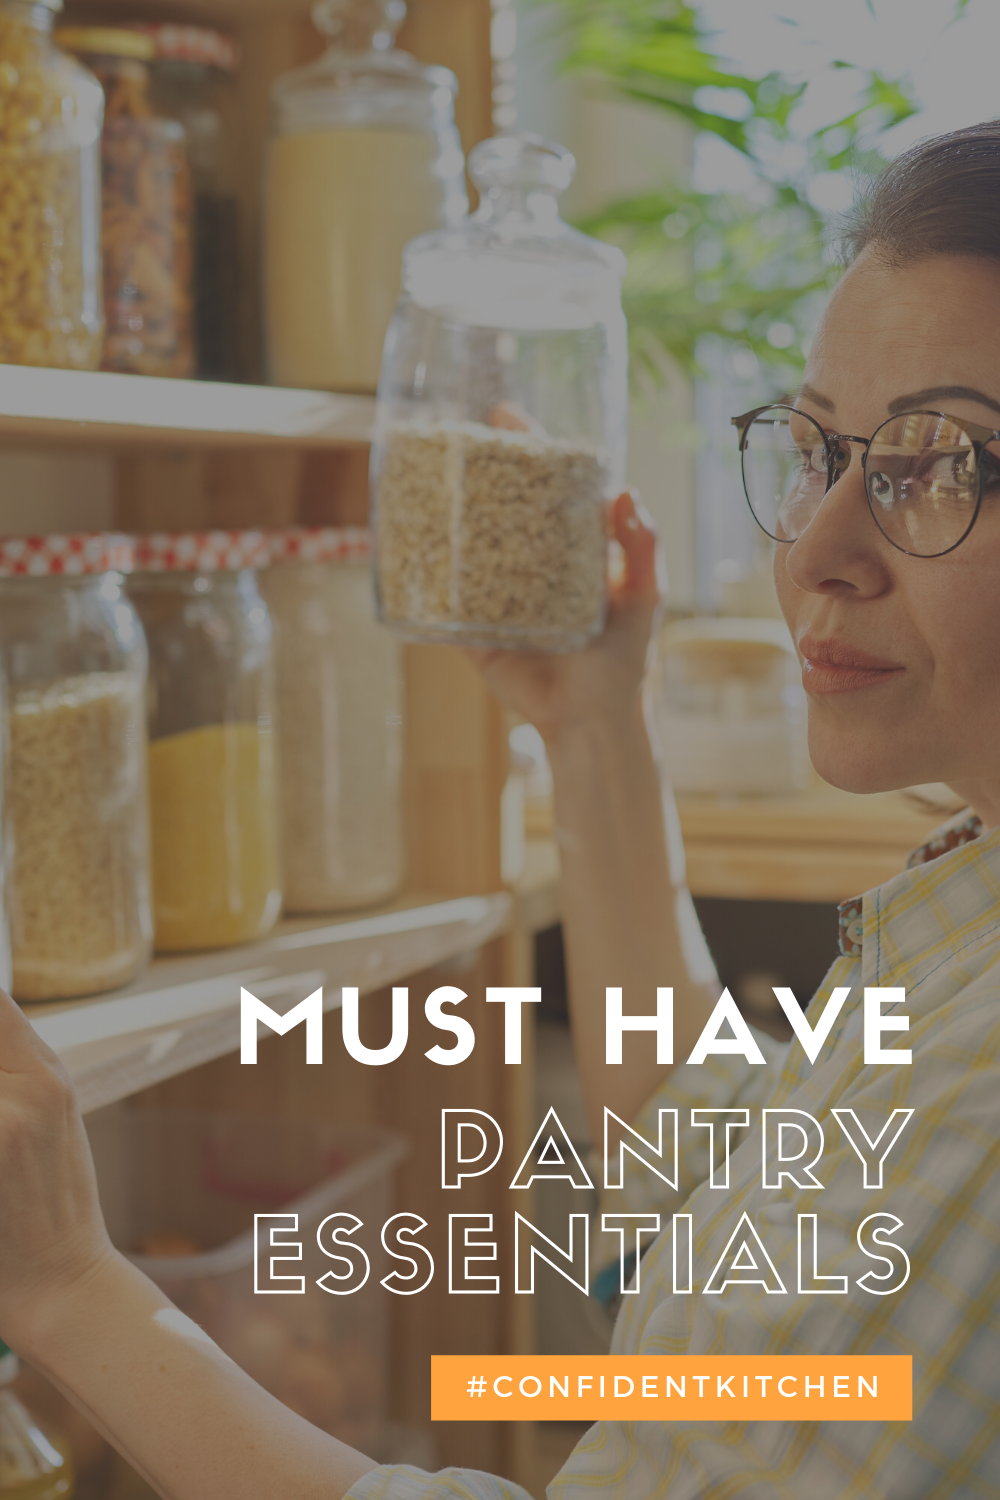 Confident Kitchen Blog - CHEFBear's Must Have Pantry Essentials